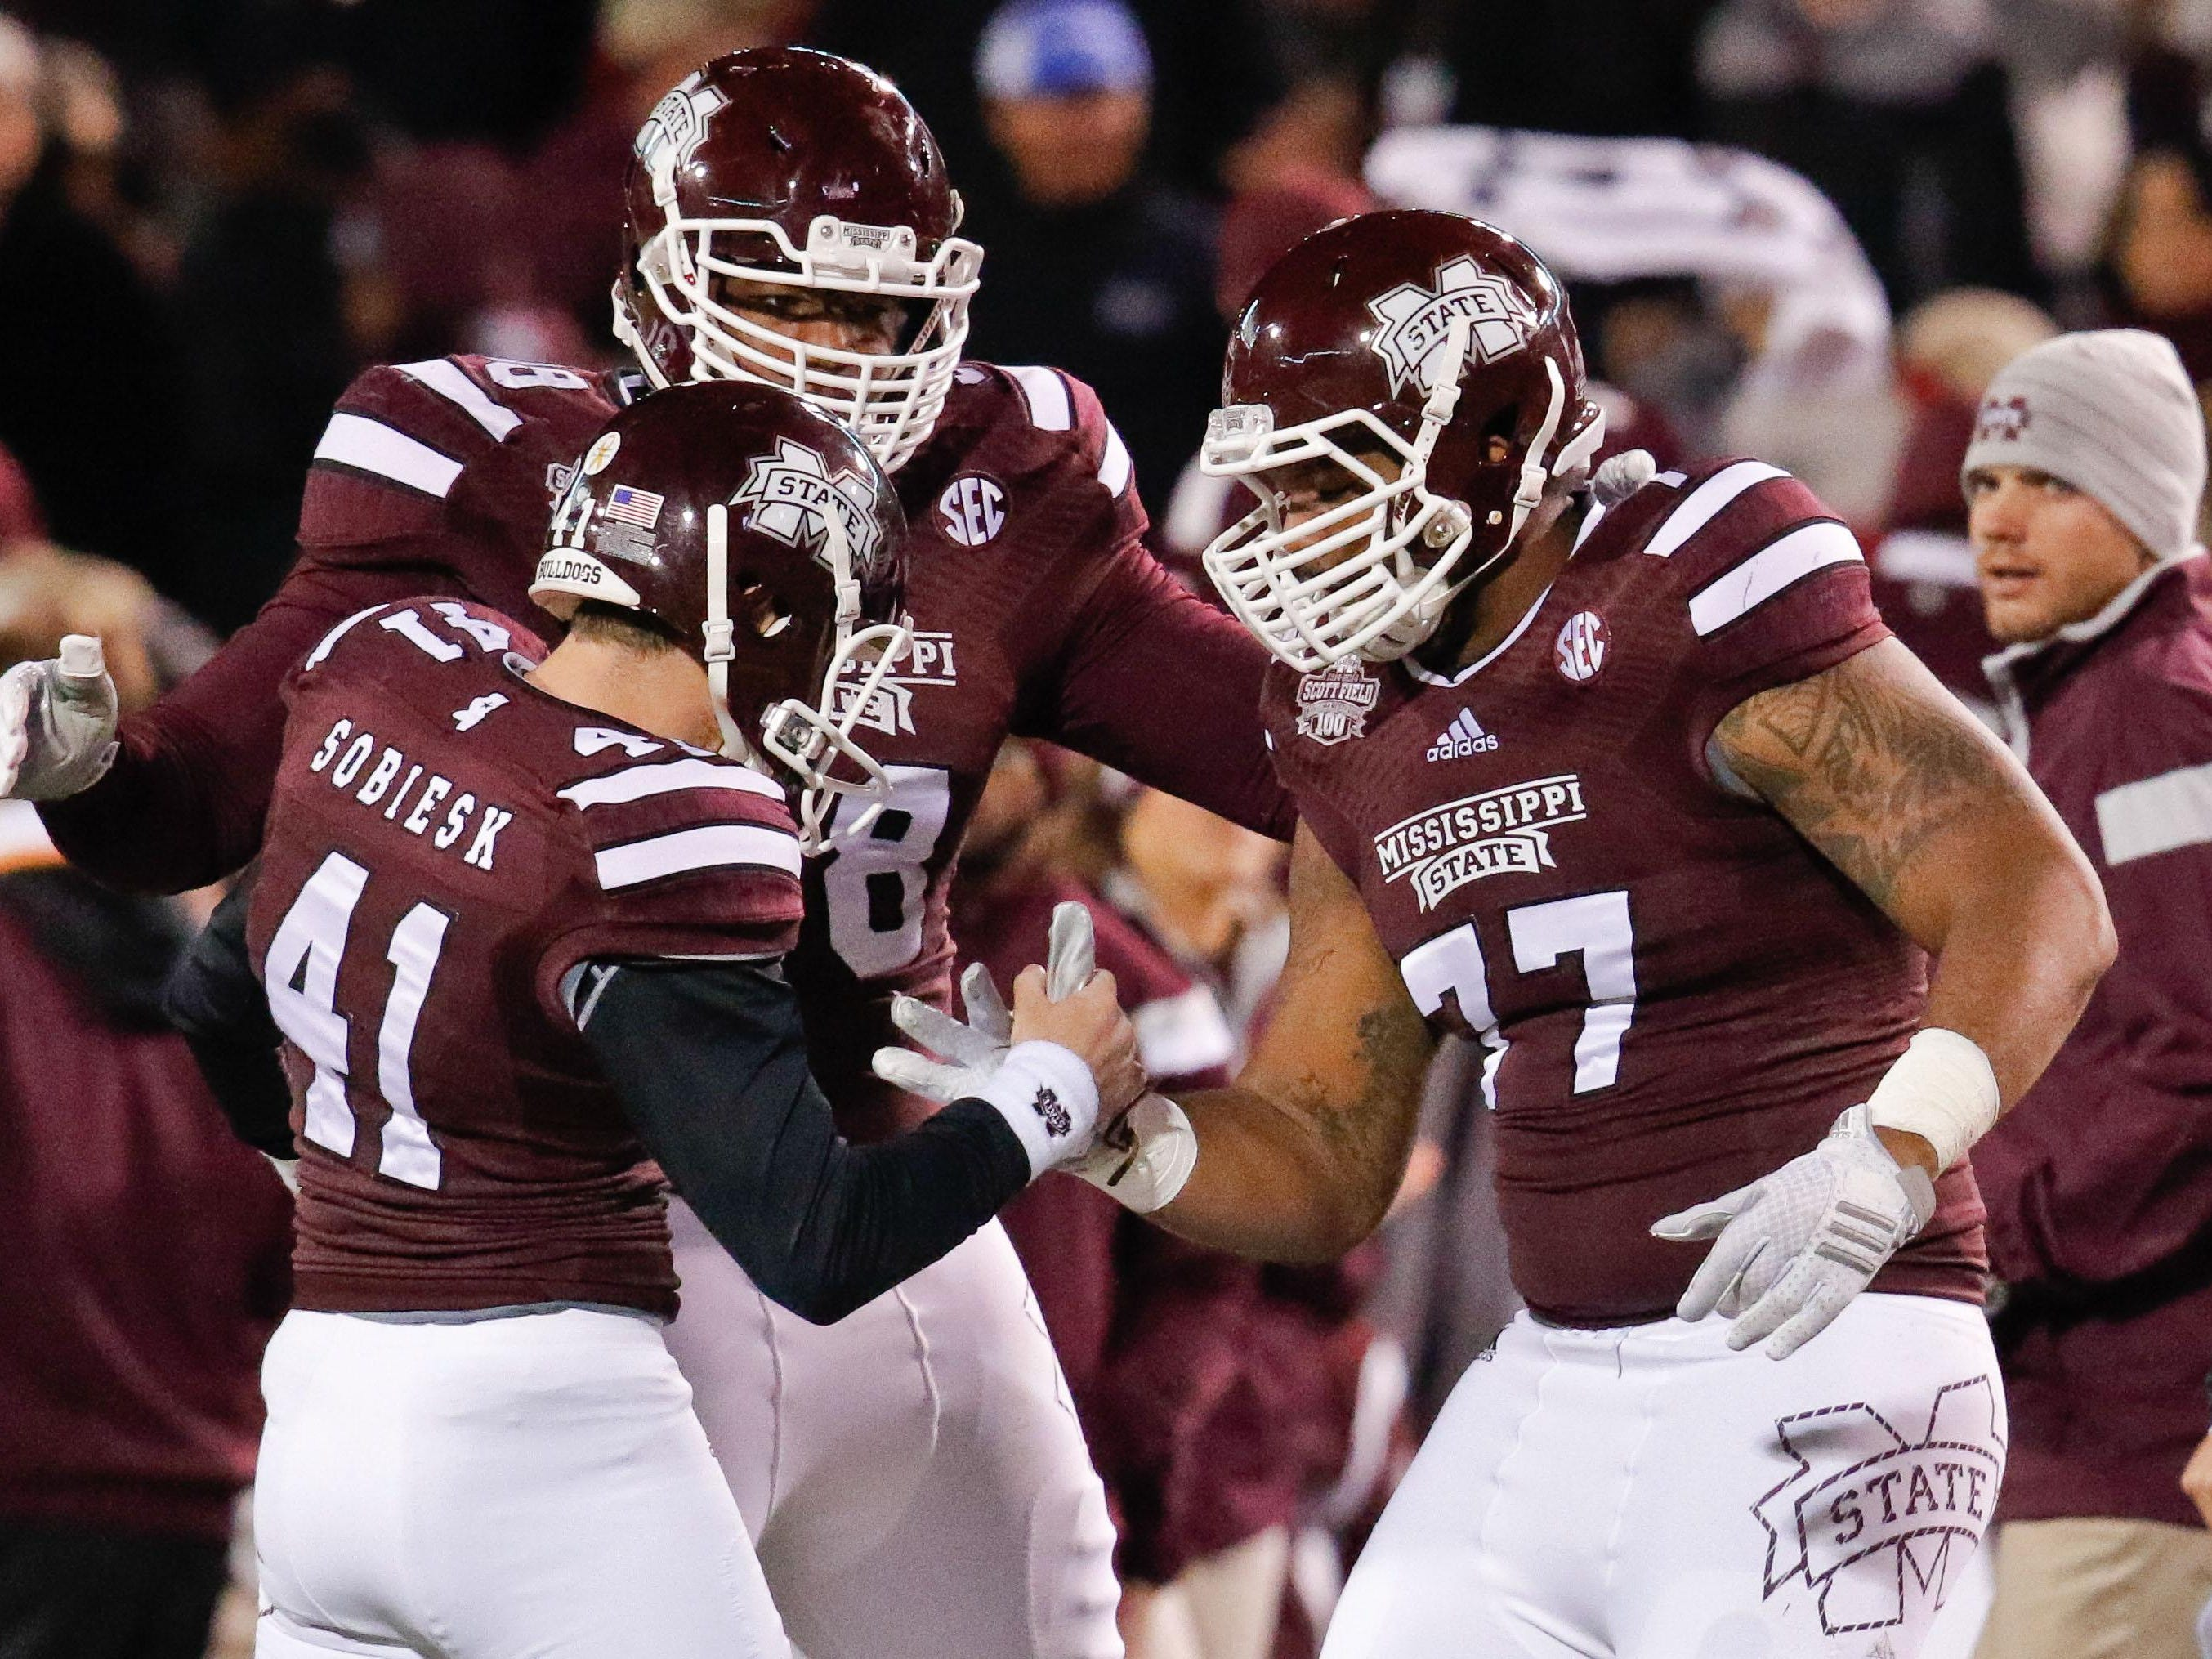 Rufus Warren (77) was once a tight end at Mississippi State and 235 pounds. Now 305 pounds, he will likely start at left tackle this year.